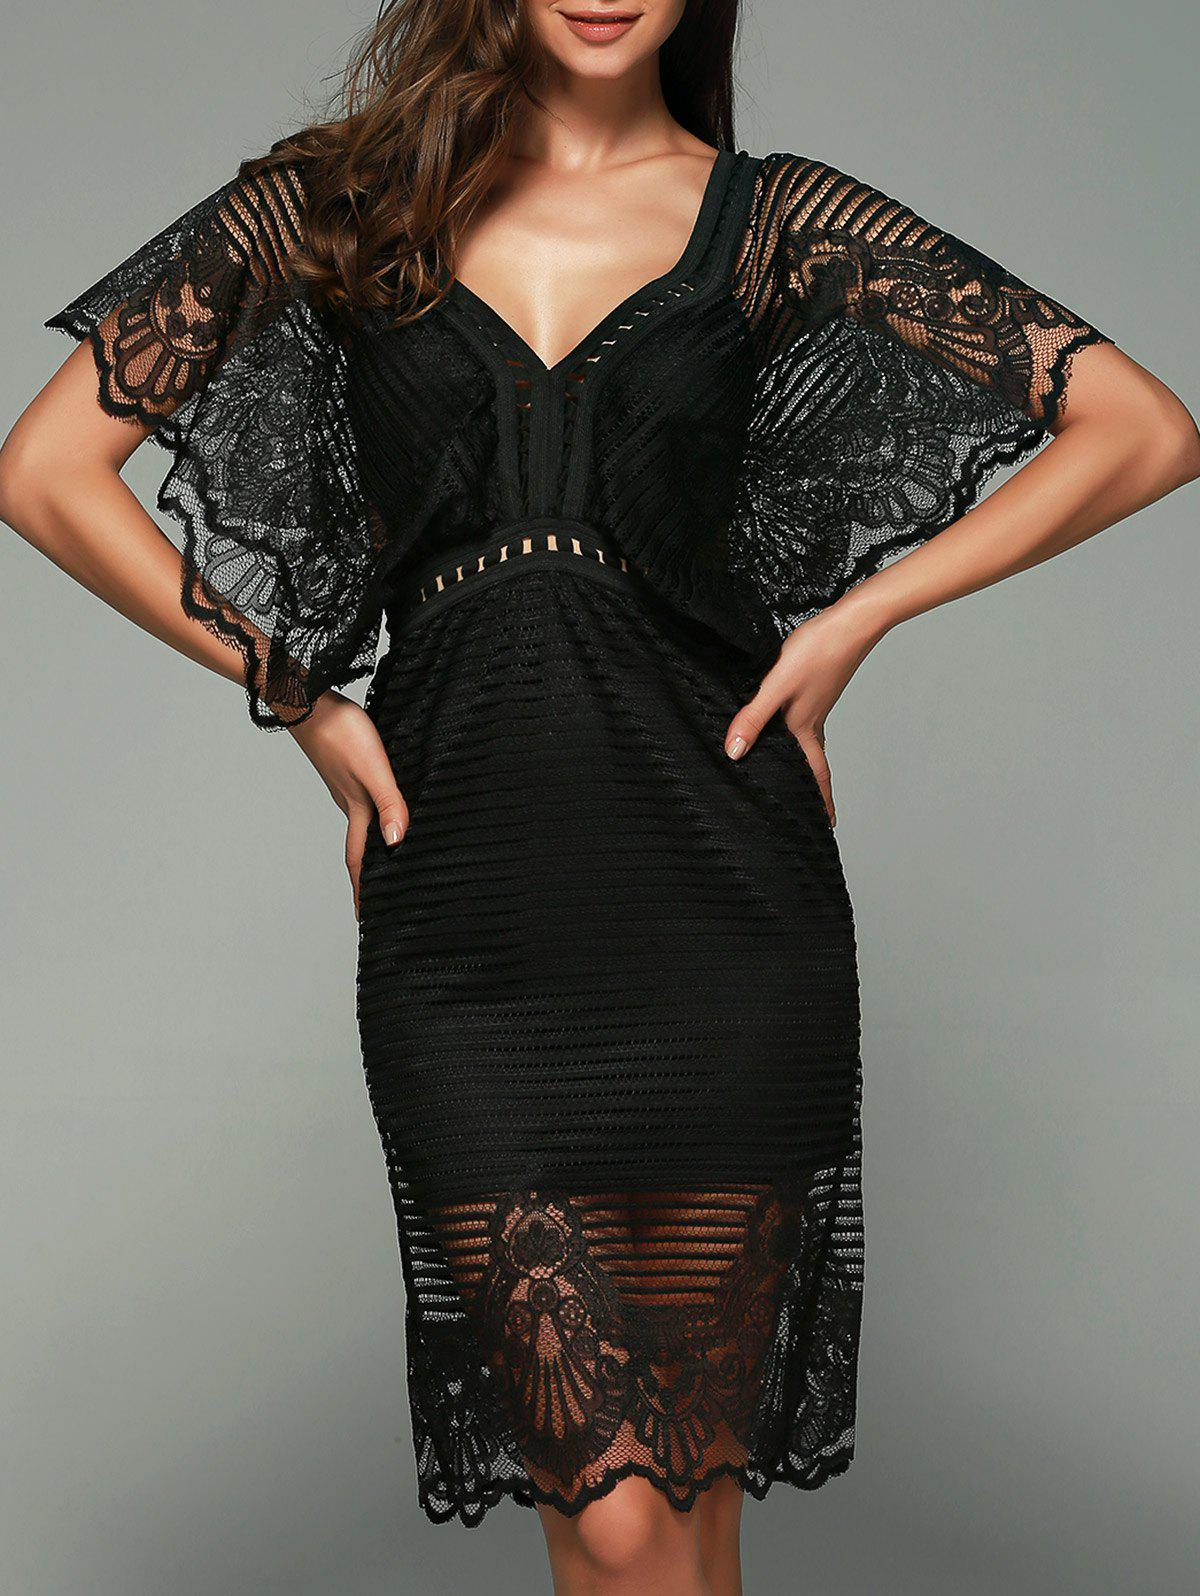 Butterfly Sleeve Lace Dress - BLACK M